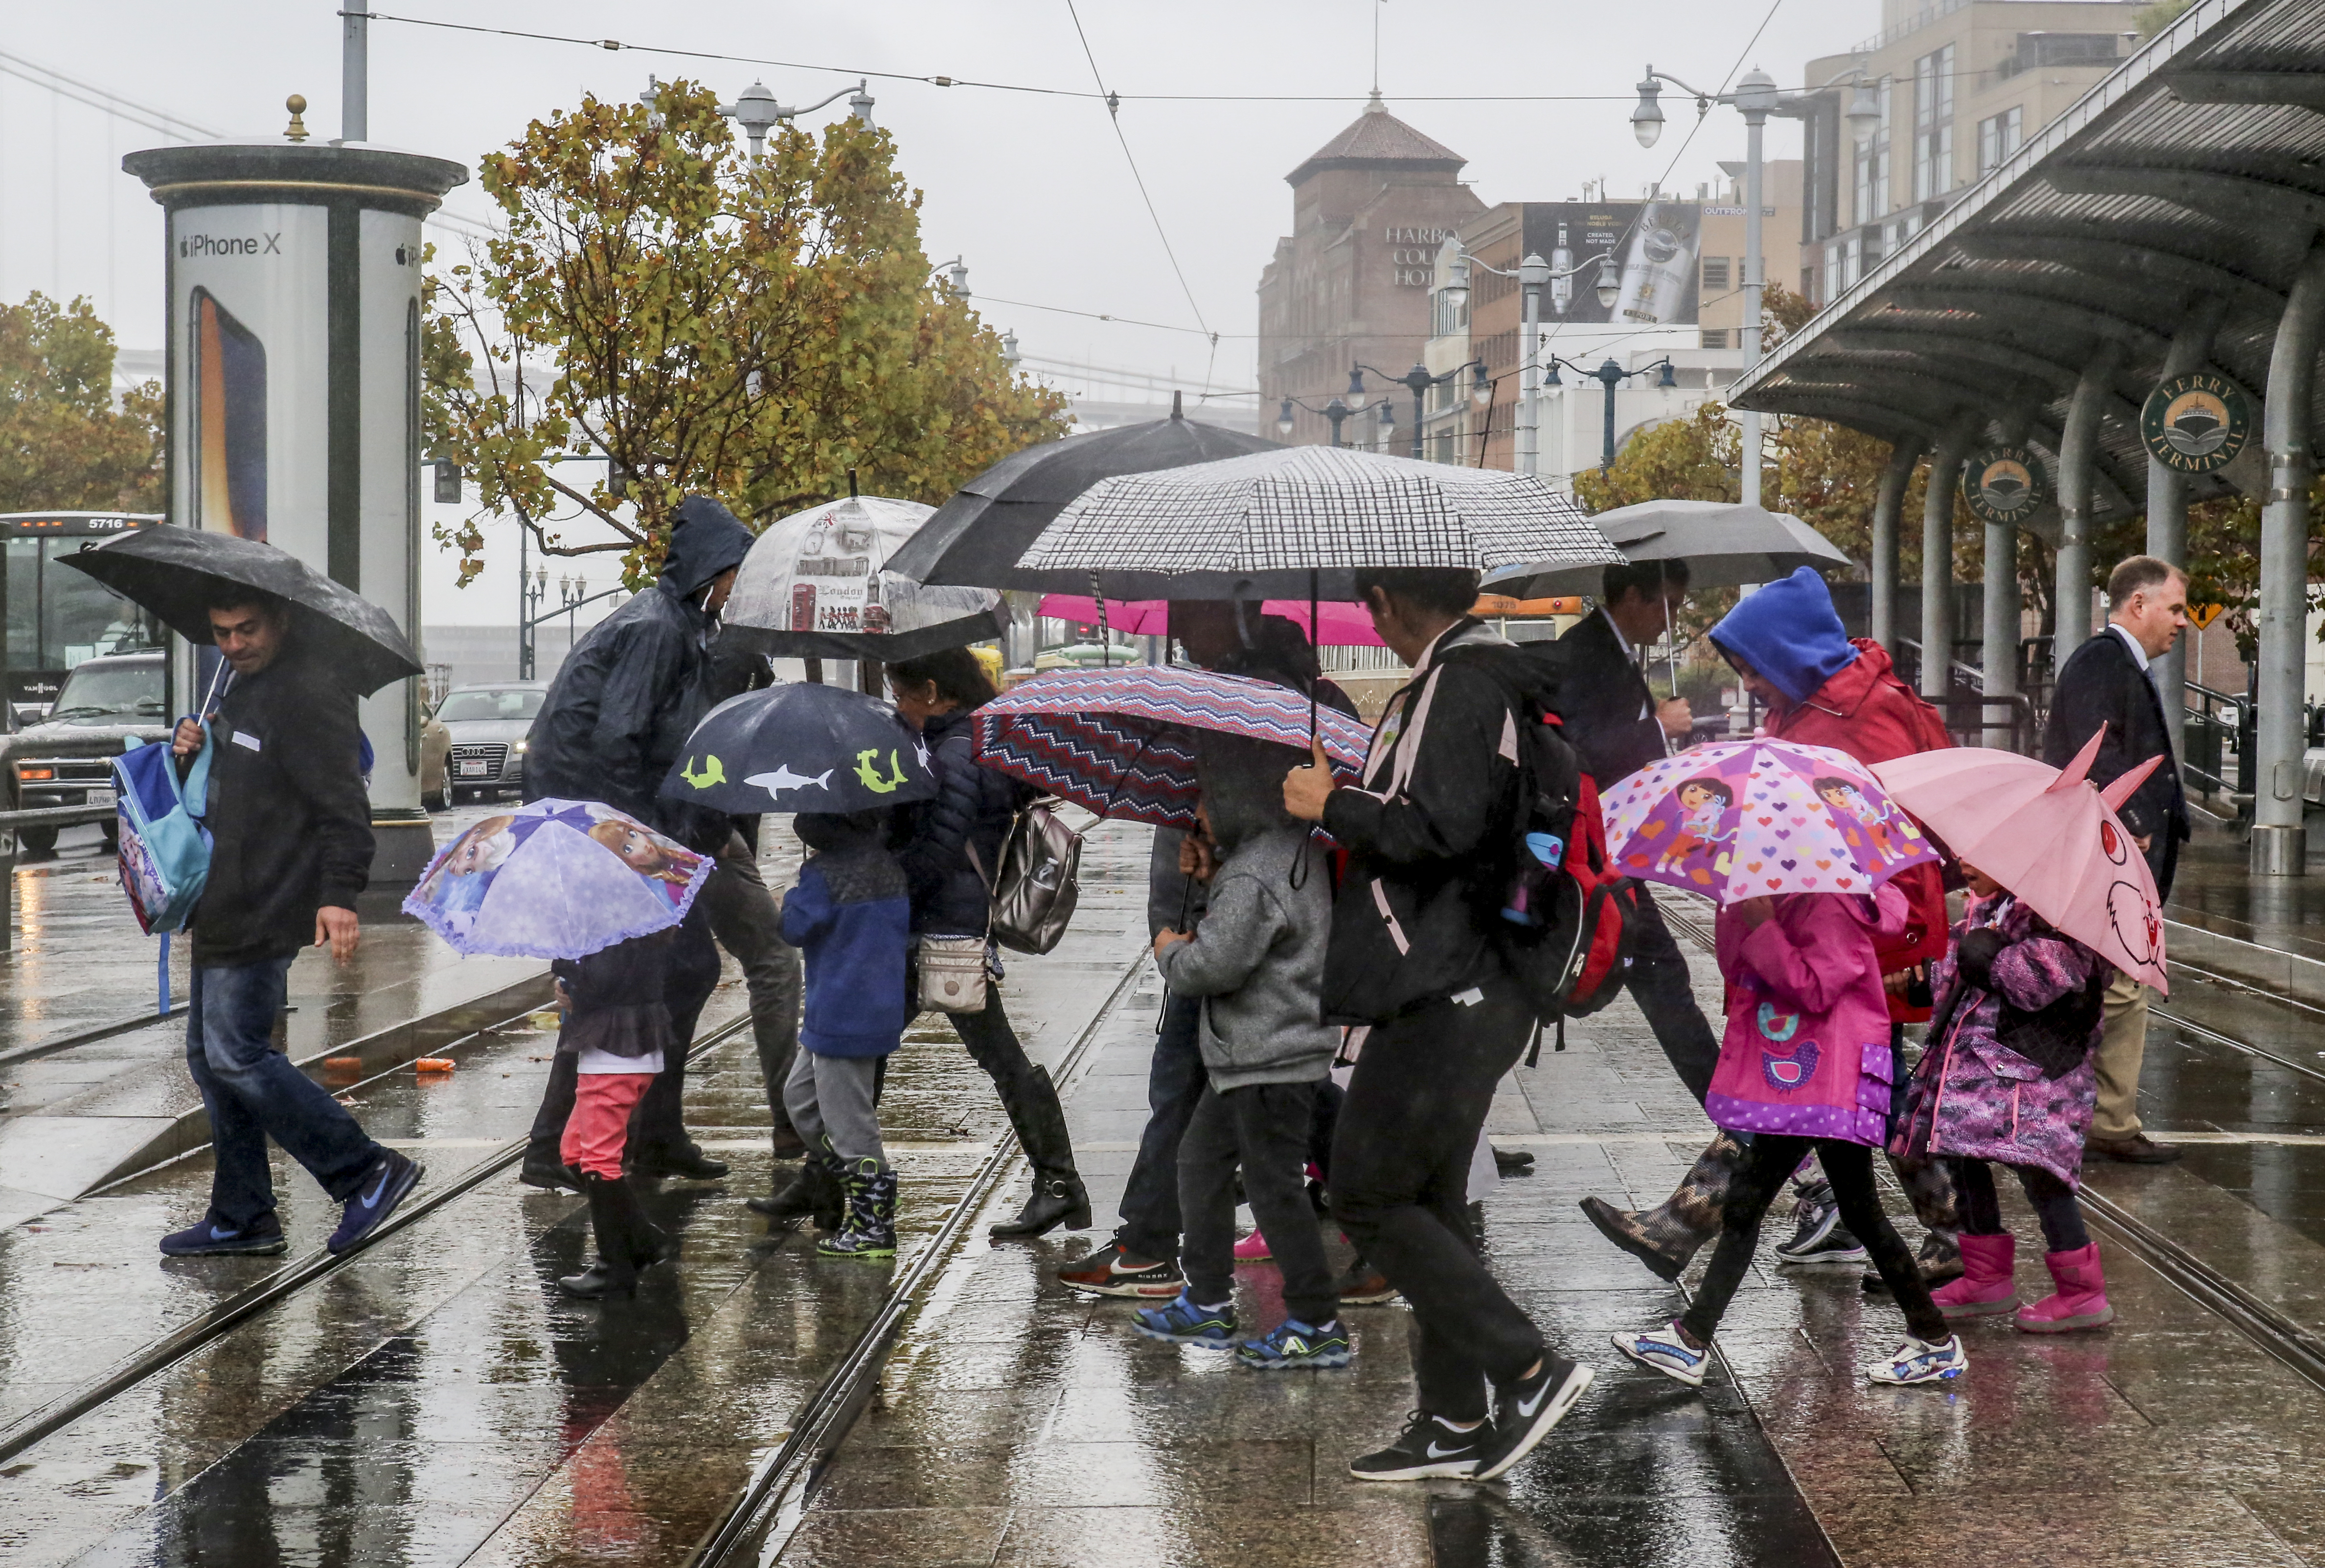 A swarm of umbrellas can be seen held by people crossing the street in front of the Ferry Building on Thursday, November 16th, 2017. (Mira Laing/Special to S.F. Examiner)